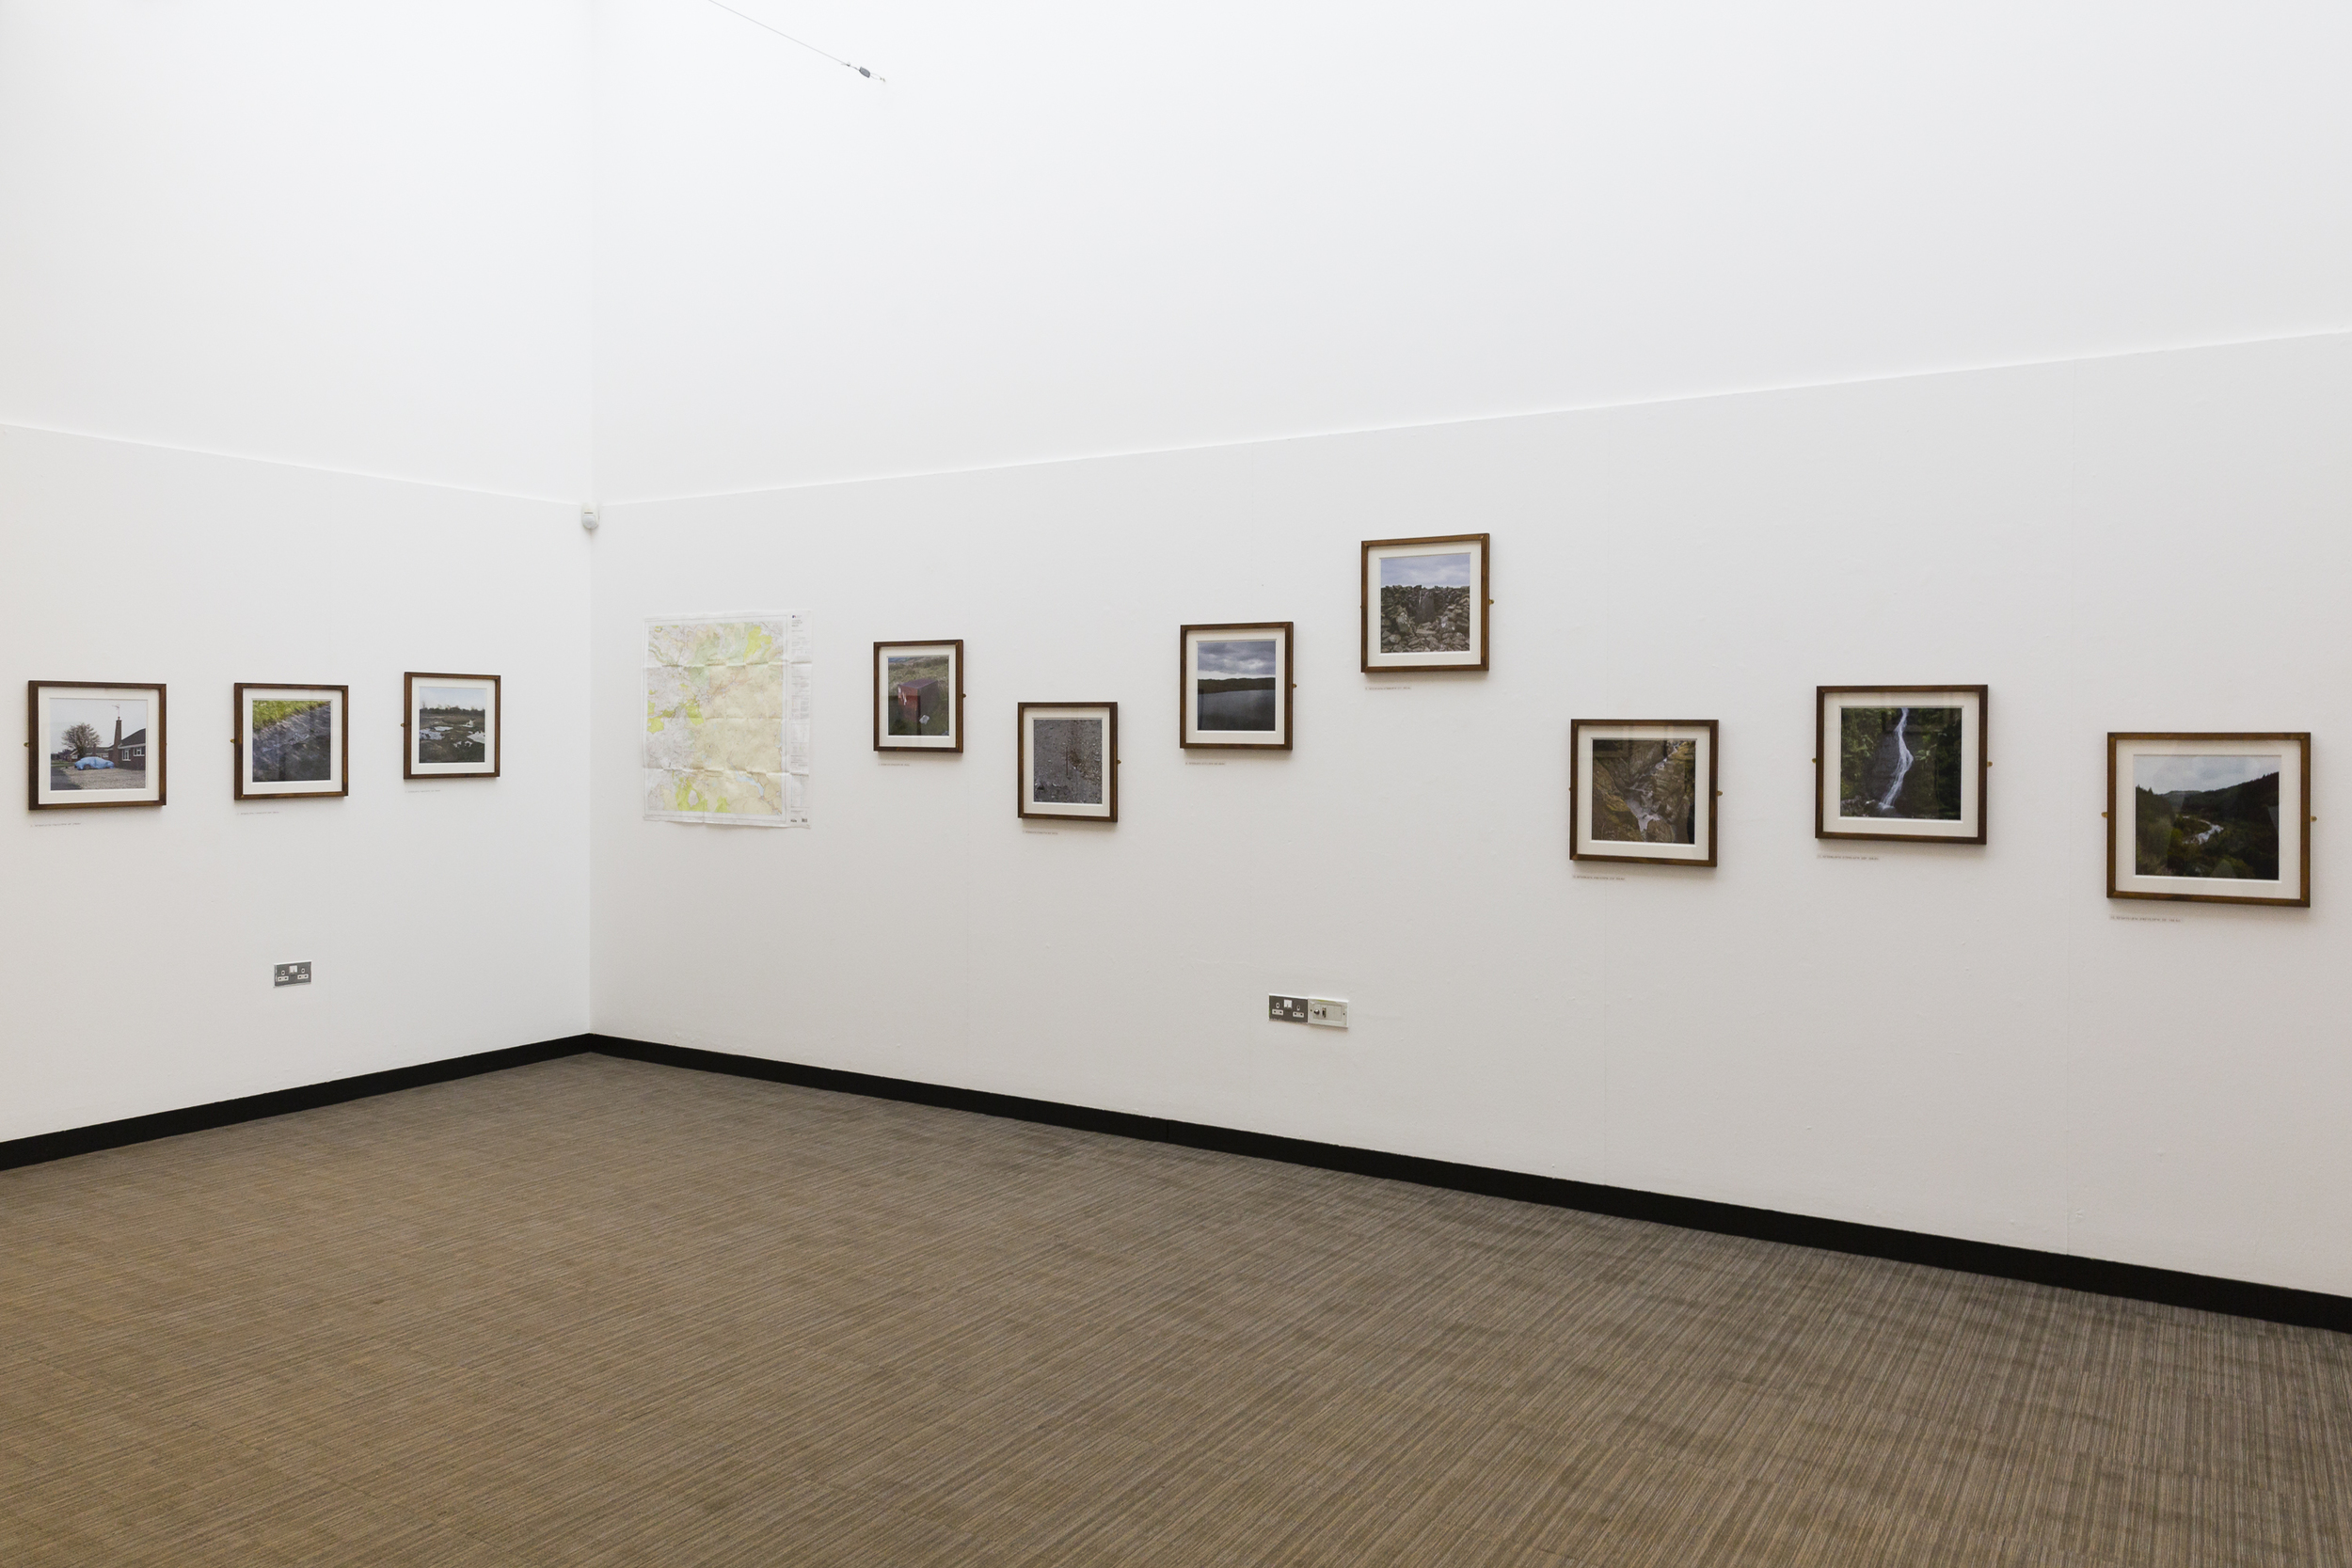 Above images: Meridian  exhibition